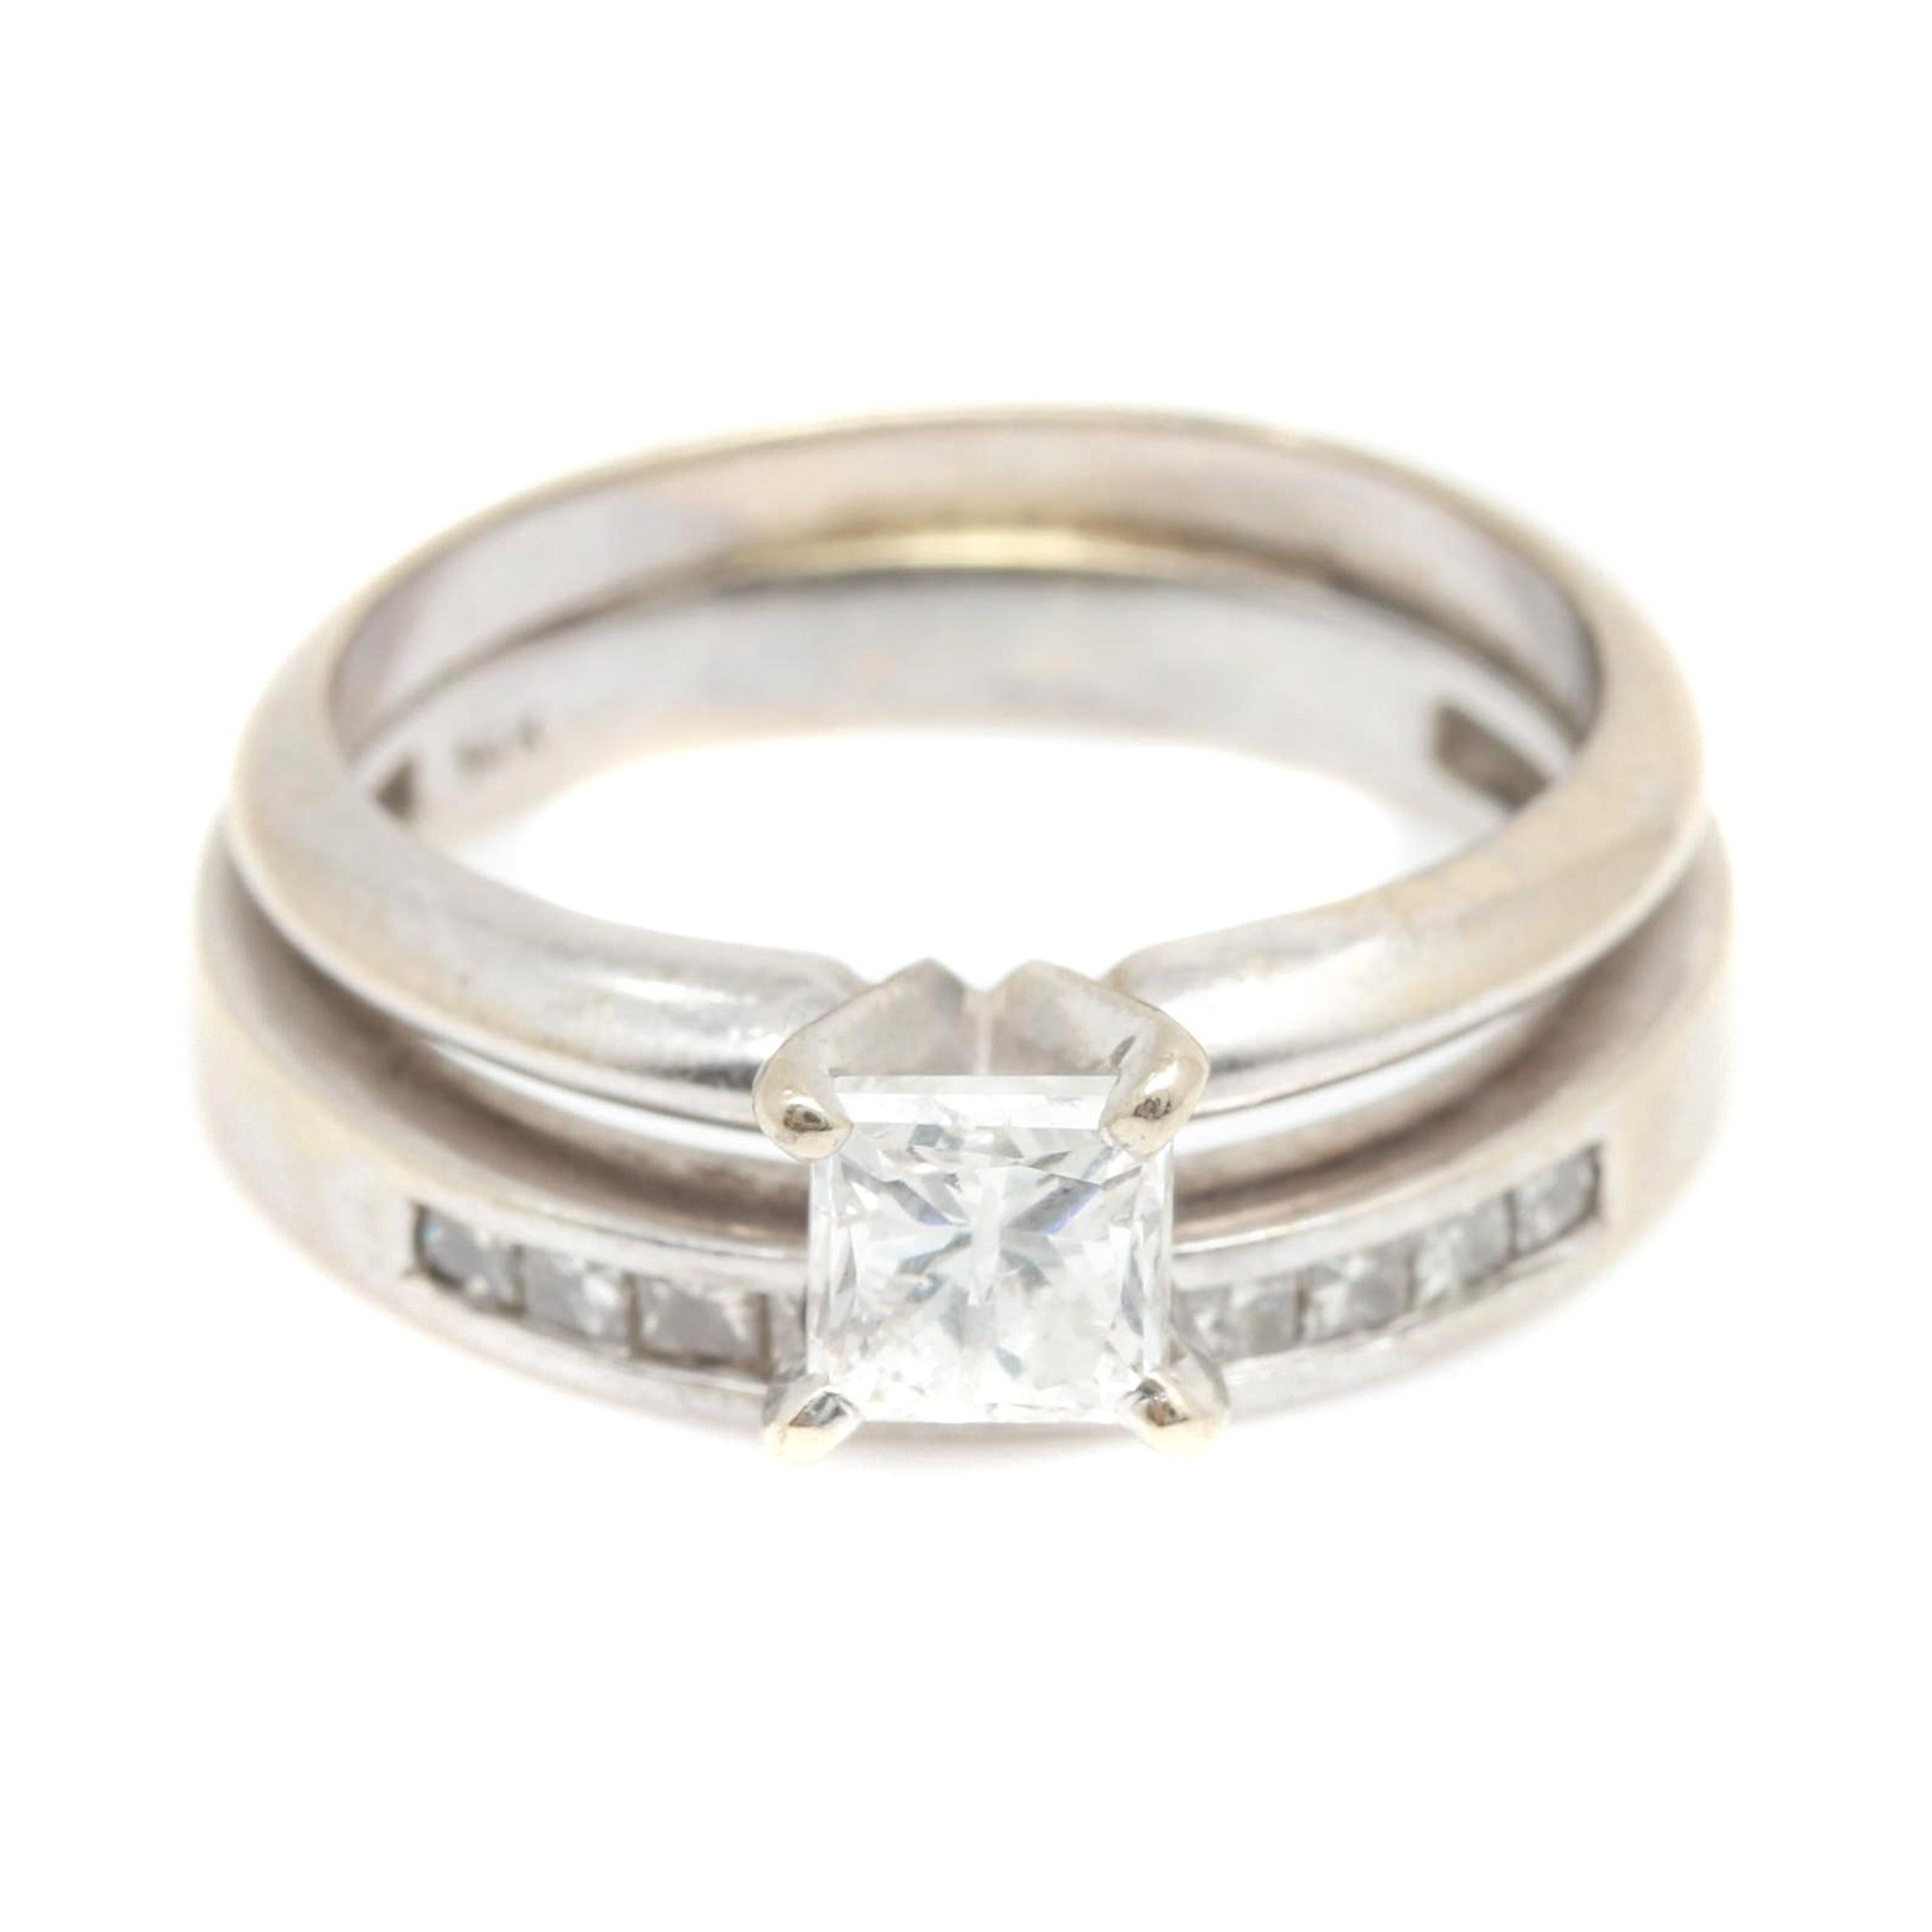 14K White Gold 0.99 CTW Diamond Ring